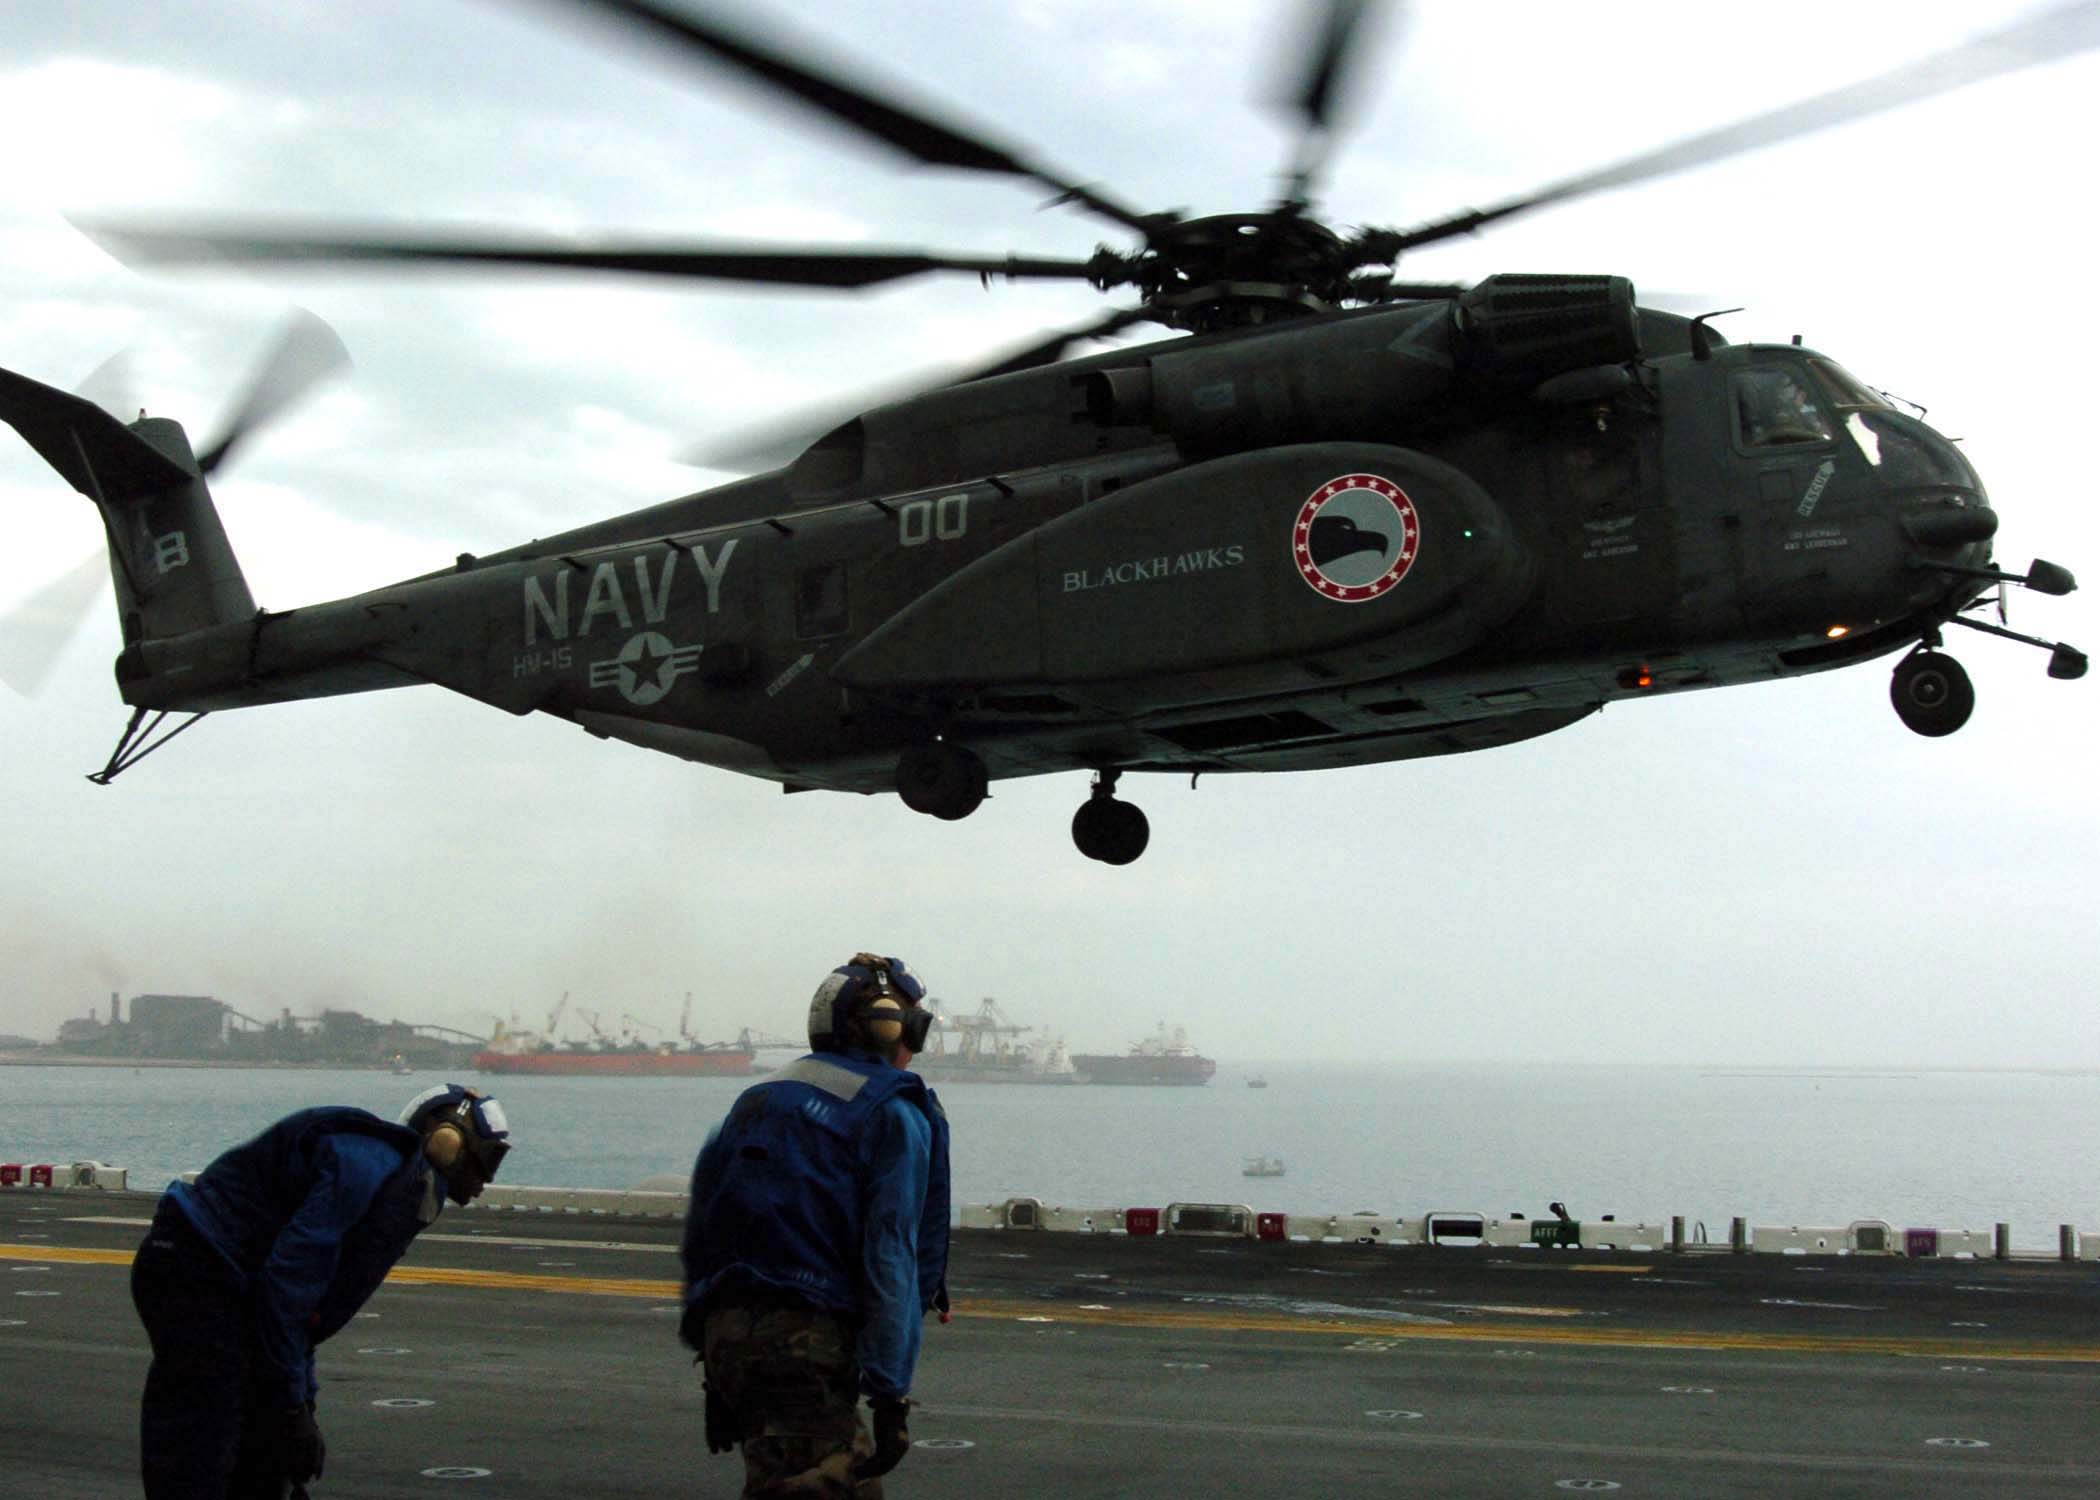 "MH-53E Sea Dragon - Persian Gulf (Jan. 10, 2005) - An MH-53E Sea Dragon helicopter, assigned to the ""Blackhawks"" of Helicopter Mine Countermeasures Squadron Fifteen (HM-15), lands on the flight deck aboard the amphibious assault ship USS Essex (LHD 2). Essex is undergoing preparations to support Operation Unified Assistance, the humanitarian operation effort in the wake of the Tsunami that struck South East Asia. U.S. Navy photo by Photographer"